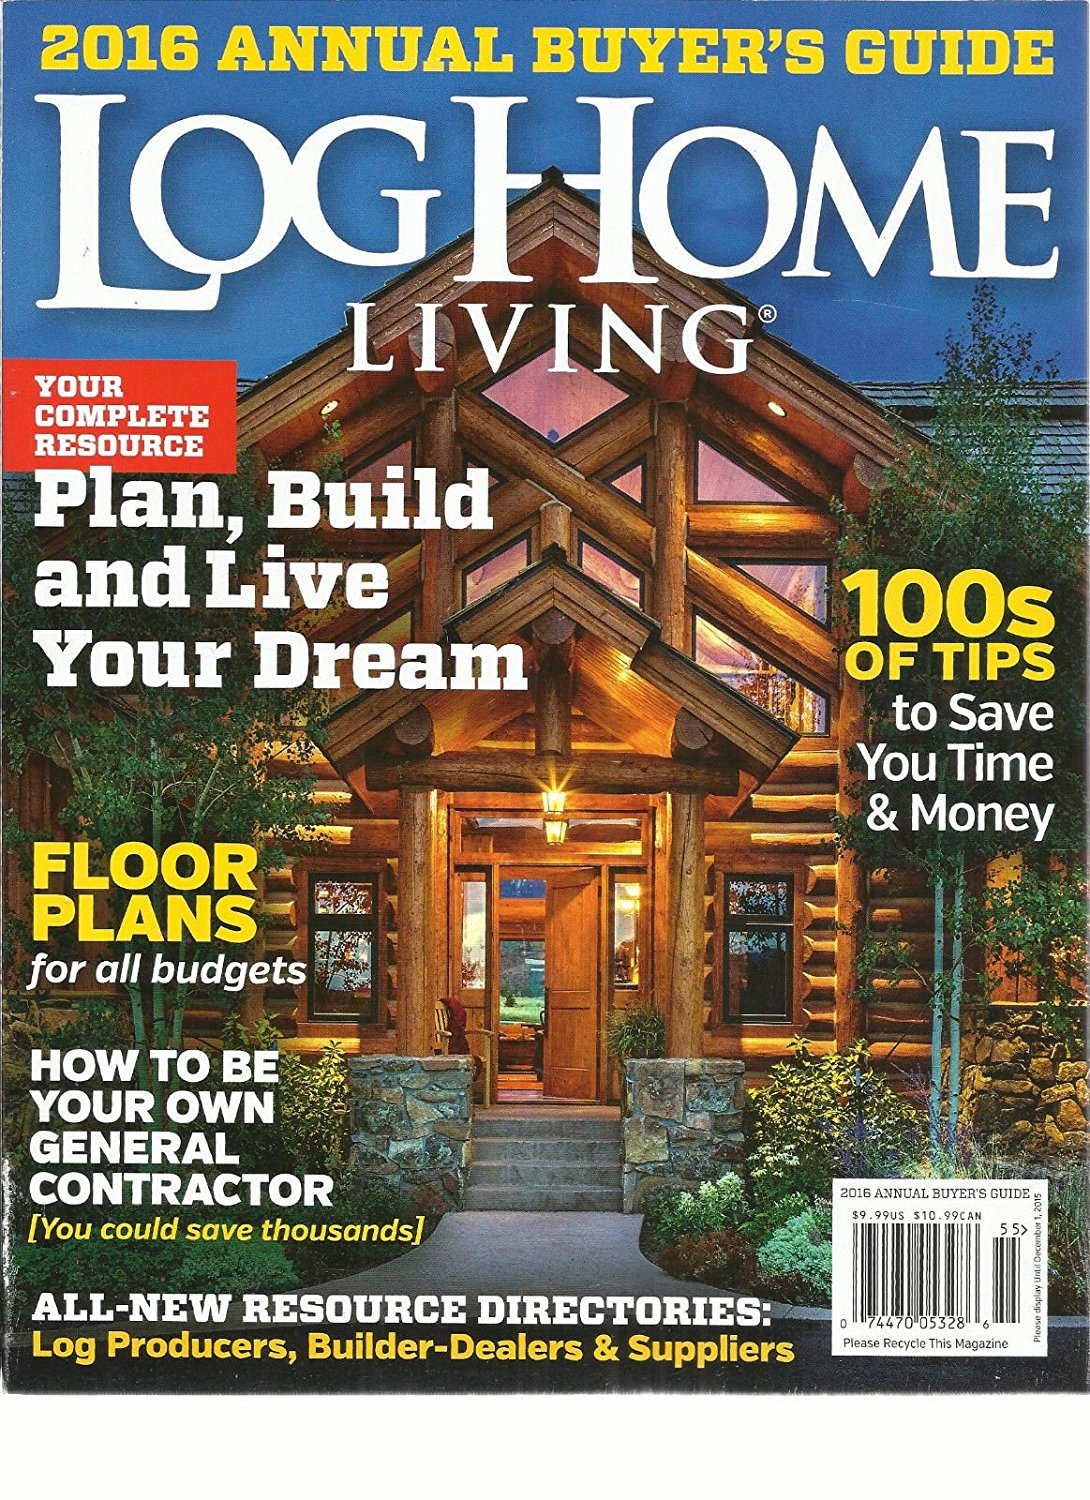 Get Quotations · LOG HOMES LIVING, 2016 ANNUAL BUYERu0027S GUIDE ISSUE, 2015 (  PLAN, BUILD U0026